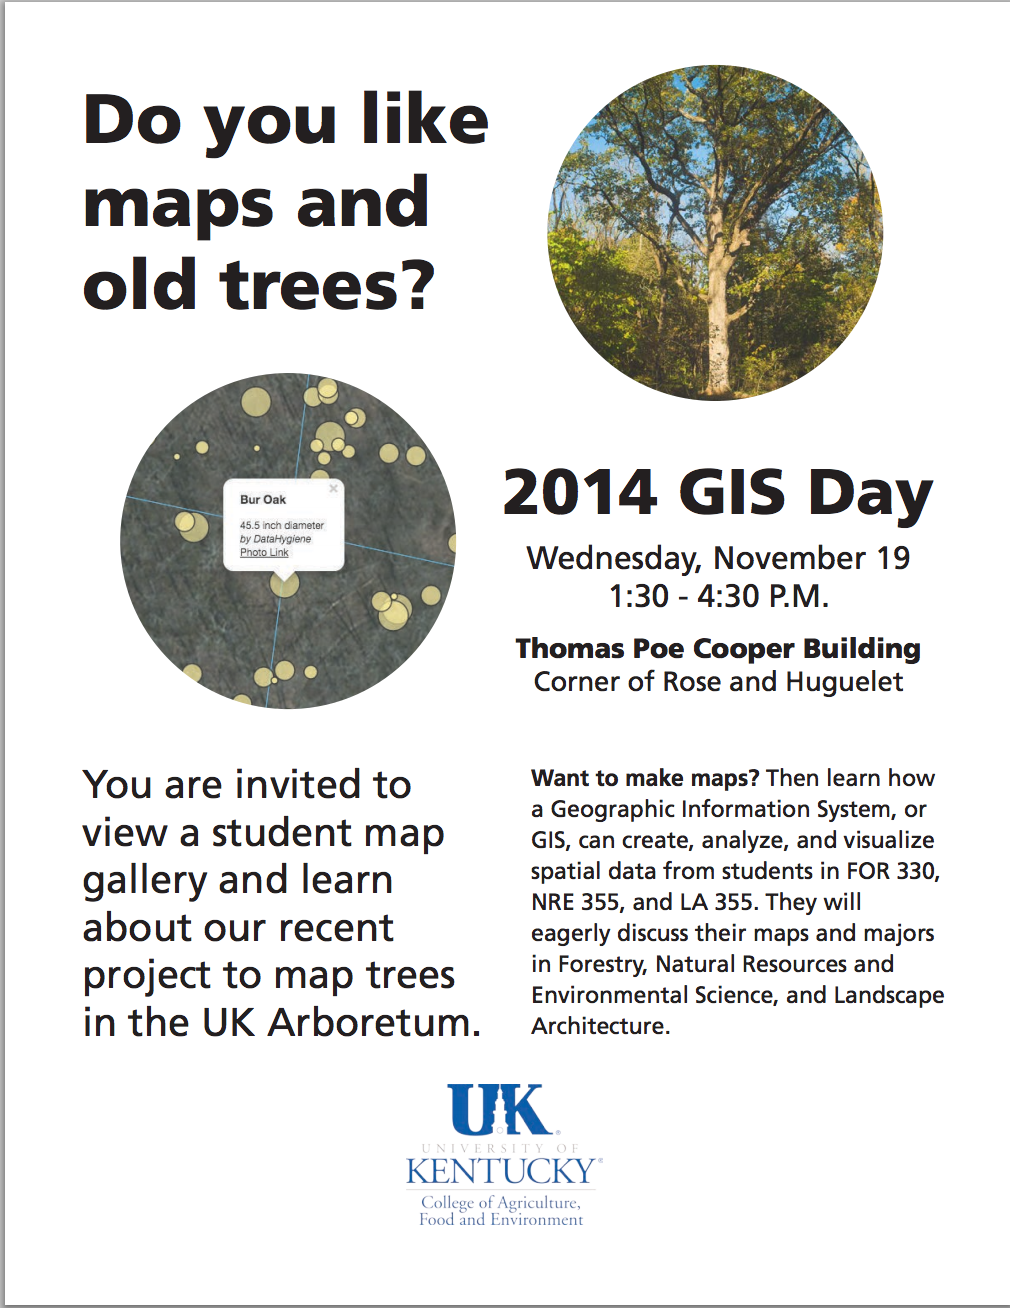 2014 GIS Day at University of Kentucky